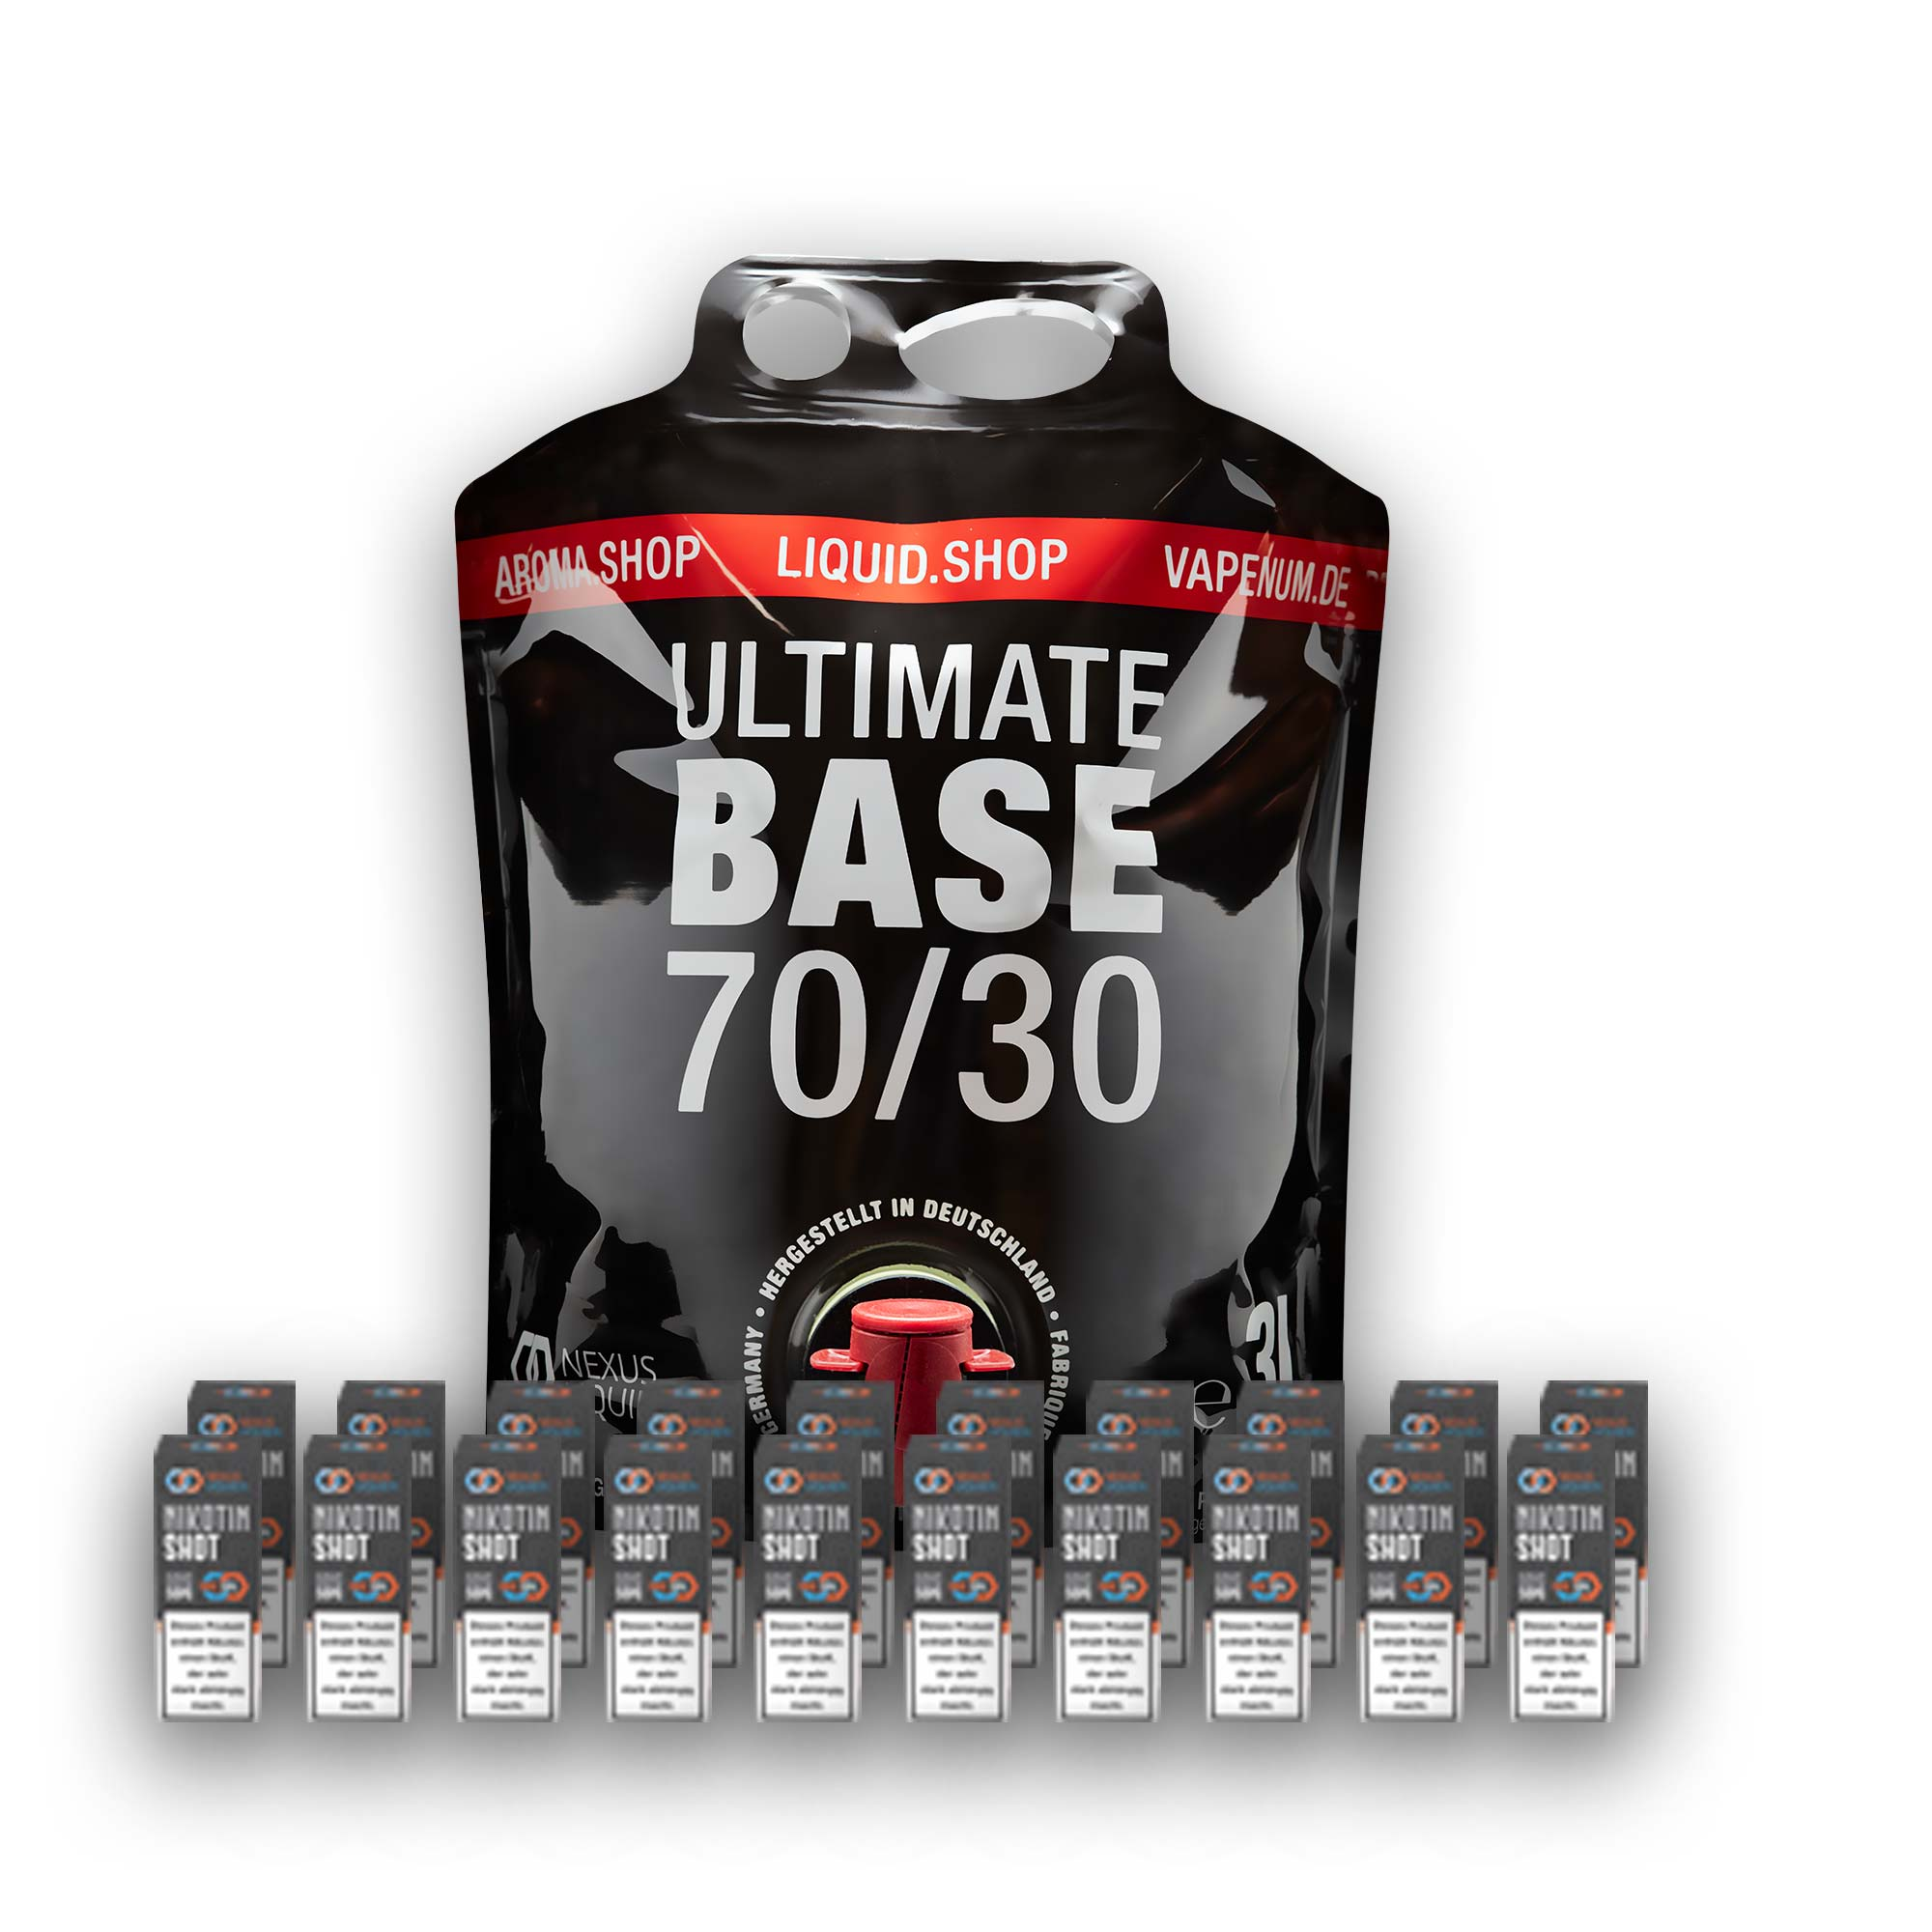 3L Ultimate Base (70/30) inklusive 20 Nik Shots 18mg